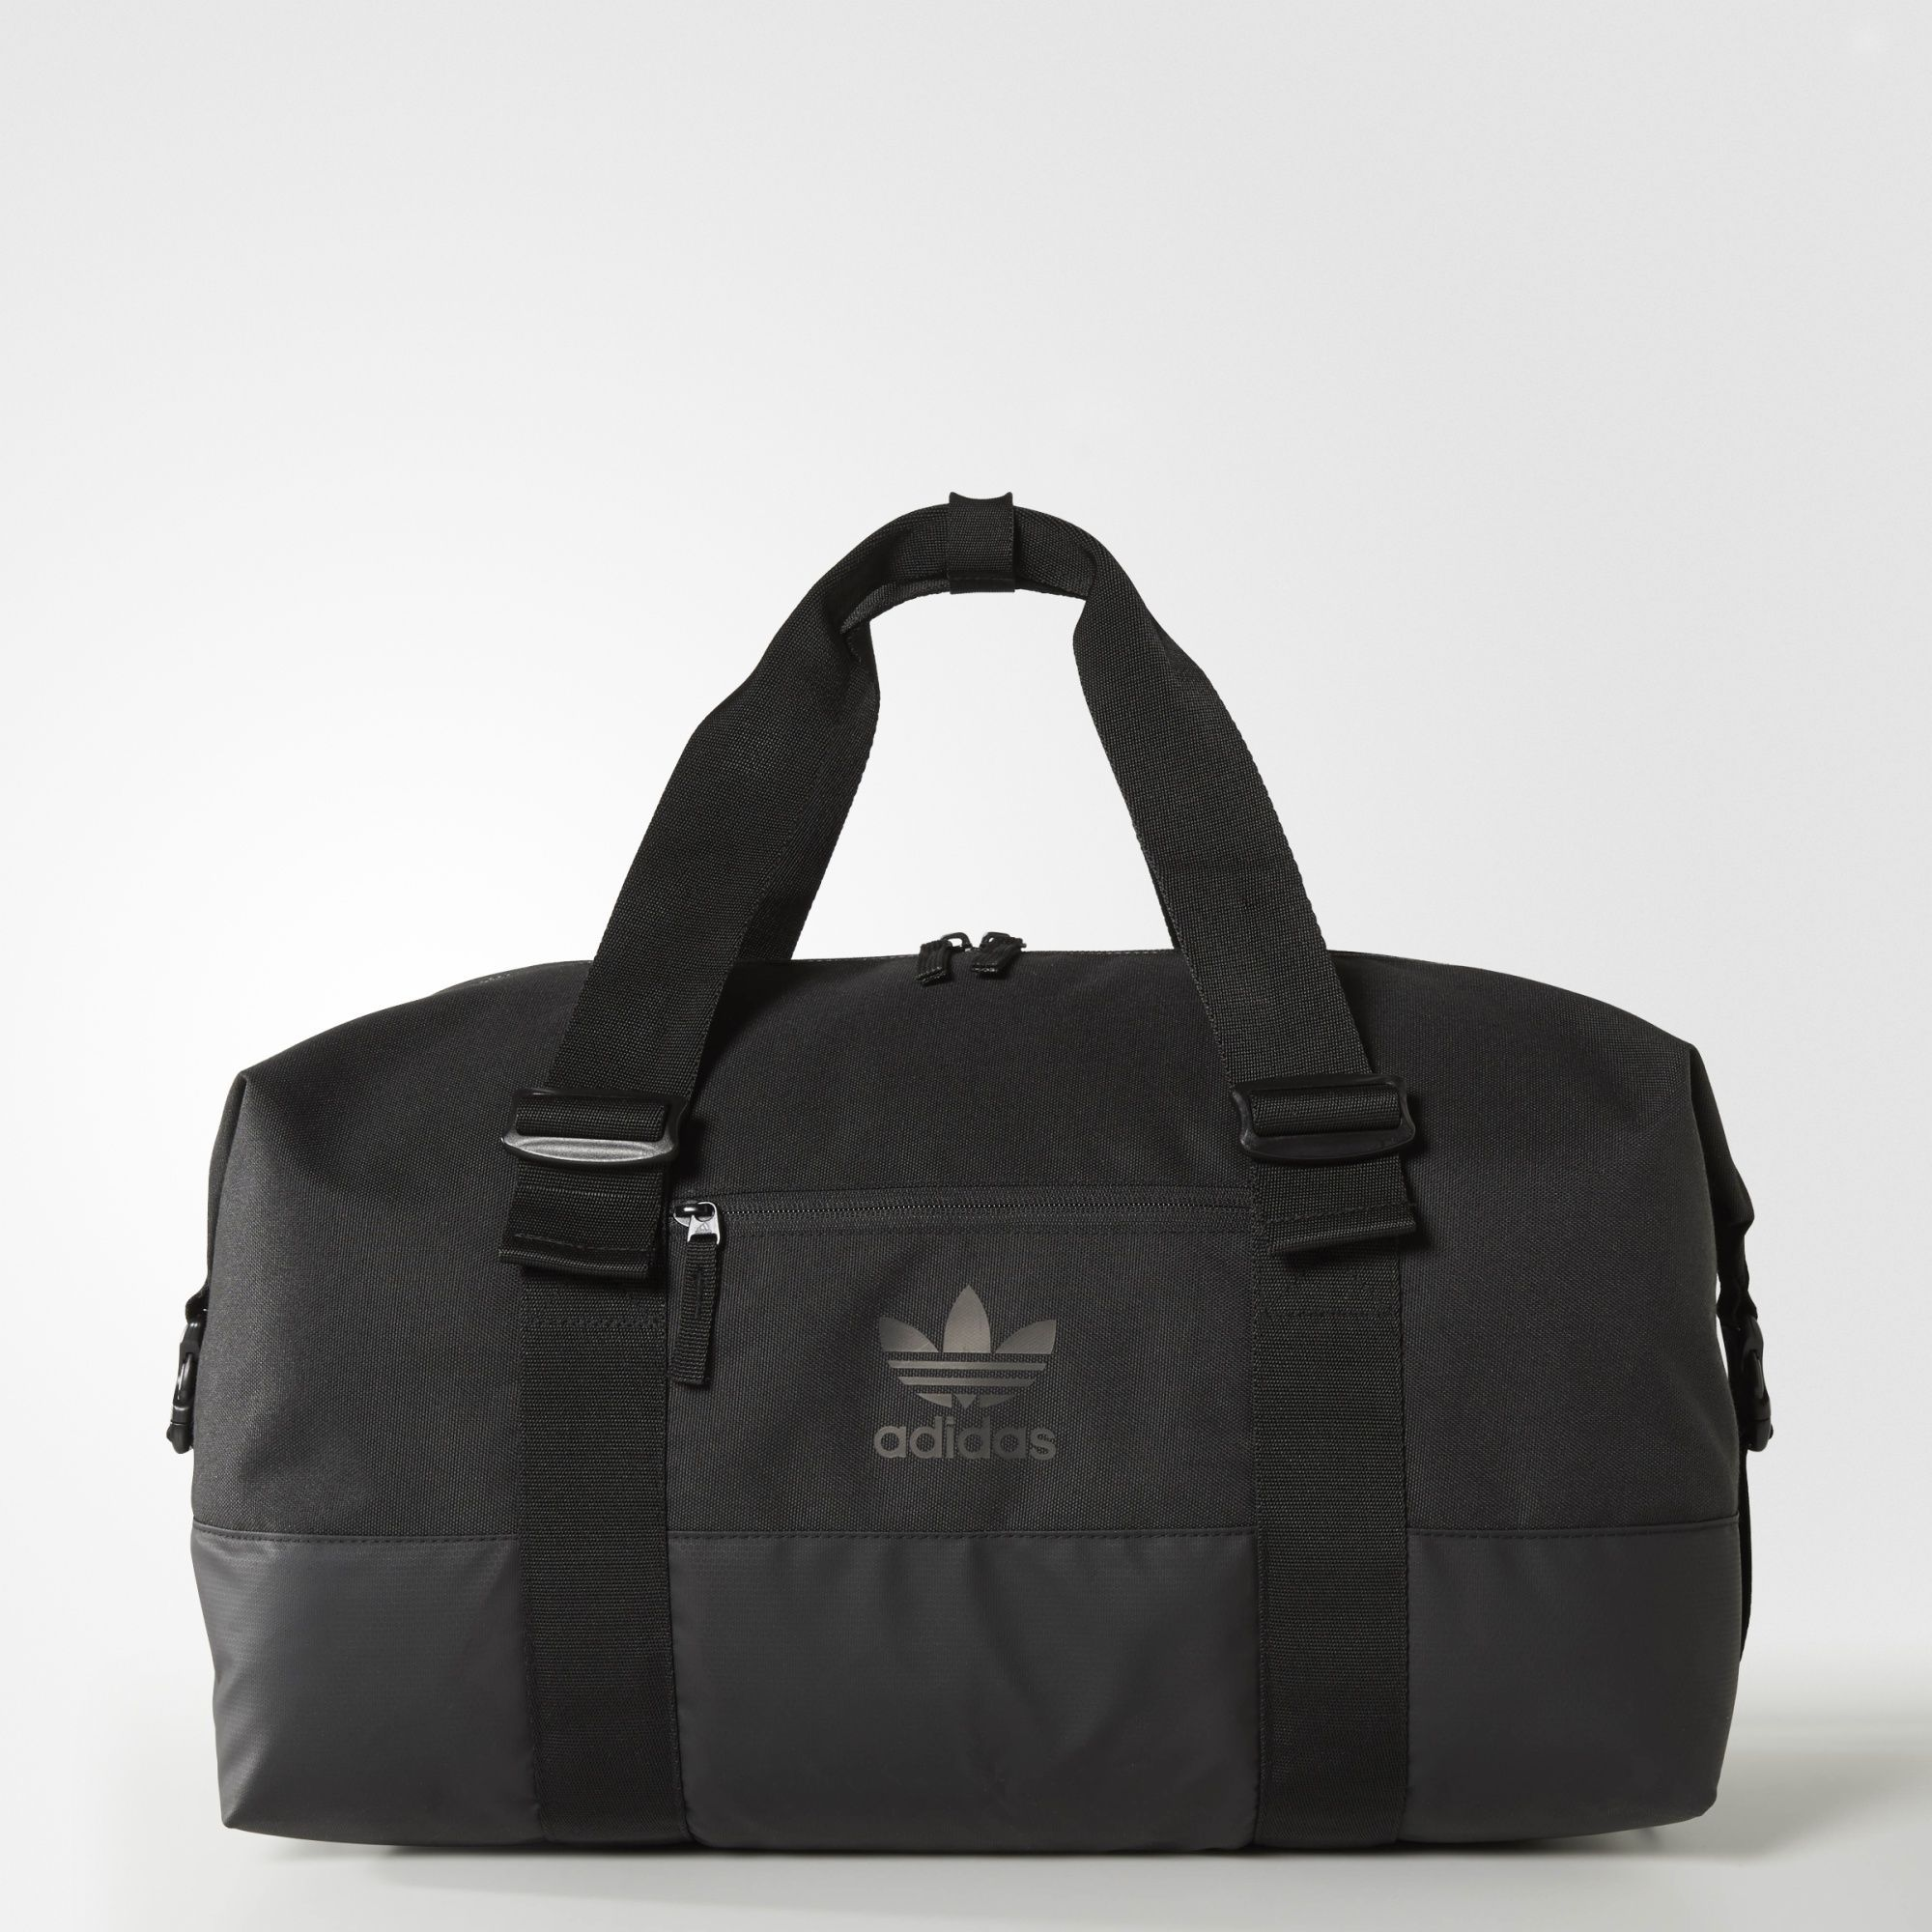 c9c3ebf3ada adidas - WEEKENDER DUFFEL BAG Duffel Bag, Backpack Bags, Weekender, Black  Adidas,